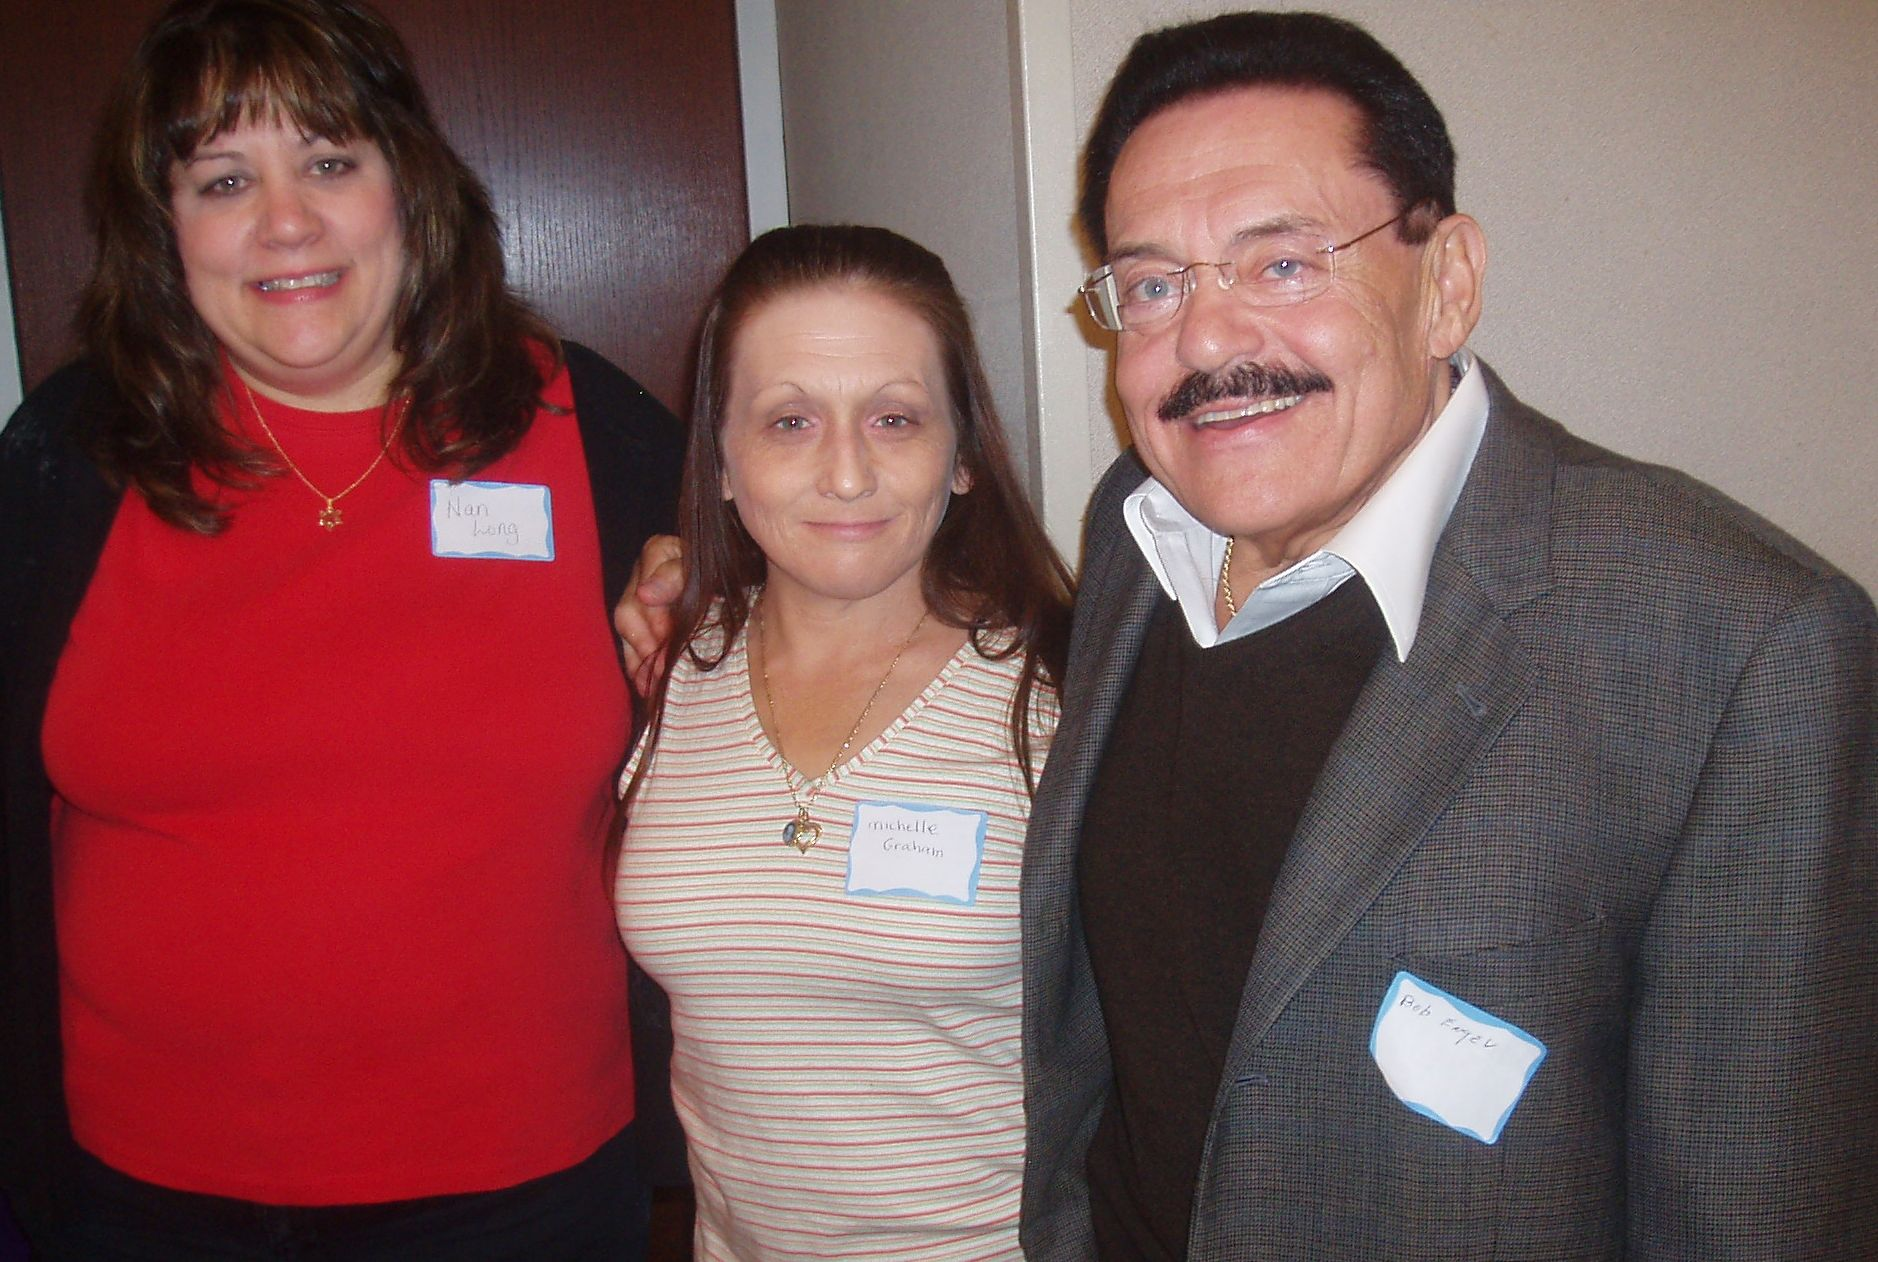 Nan Long, Michelle Graham & Bob Engel